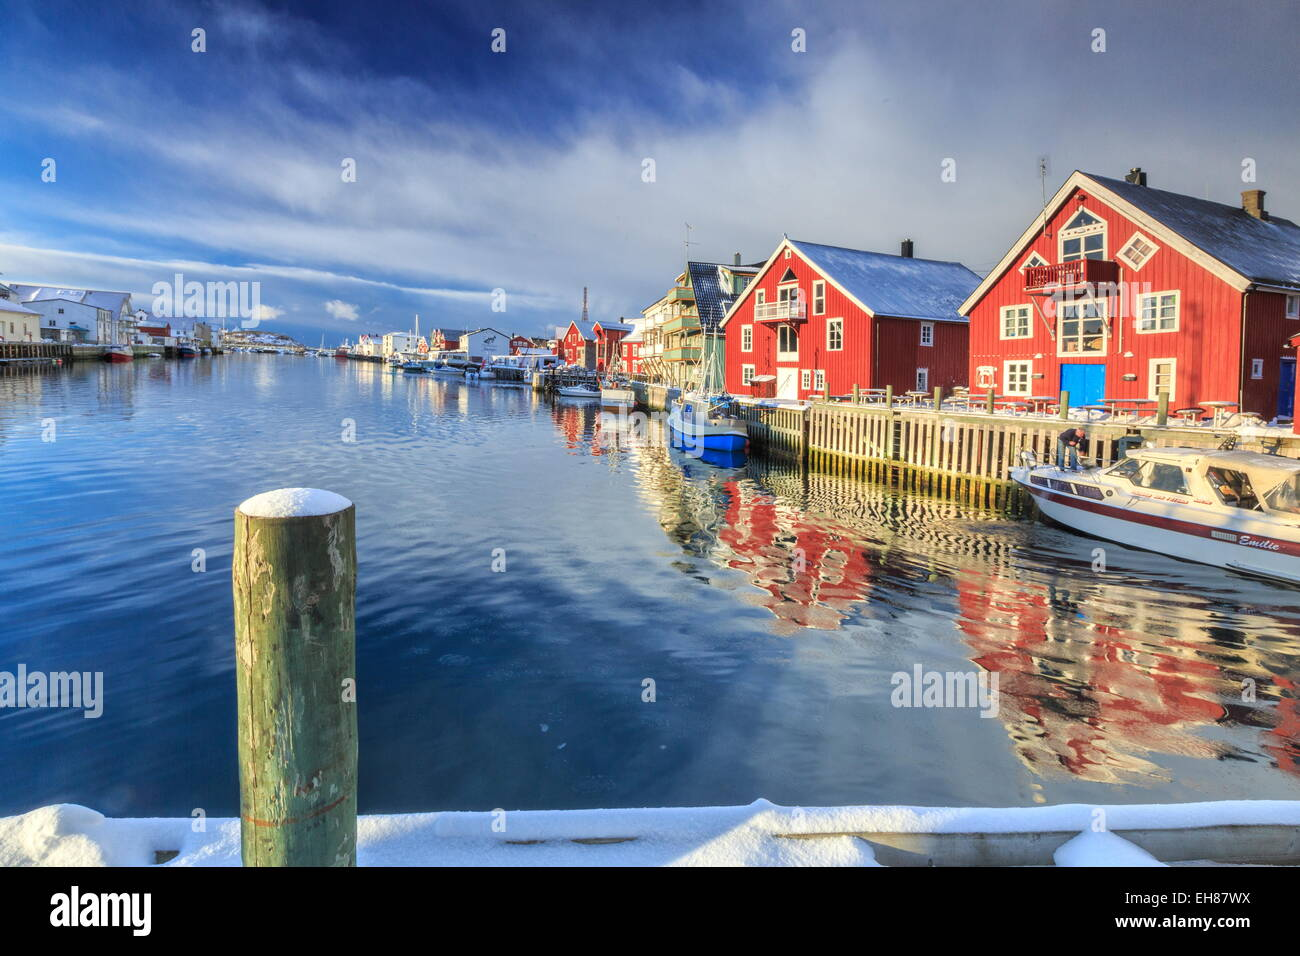 View of colorful fishermen's houses and private boats overlooking the canal-port of Henningsvaer, Lofoten Islands, Stock Photo